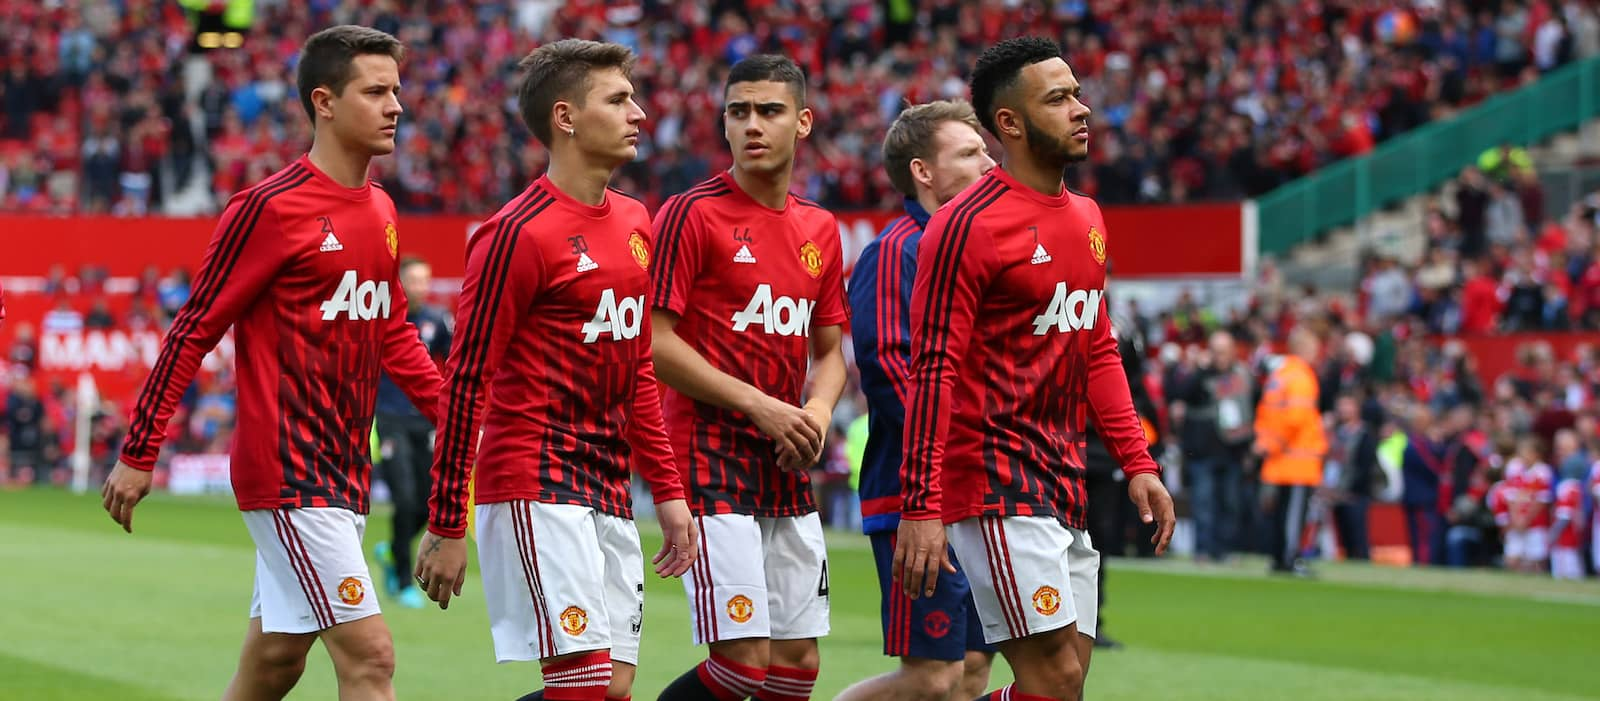 Memphis Depay: The pre-seaon will be very important for Manchester United